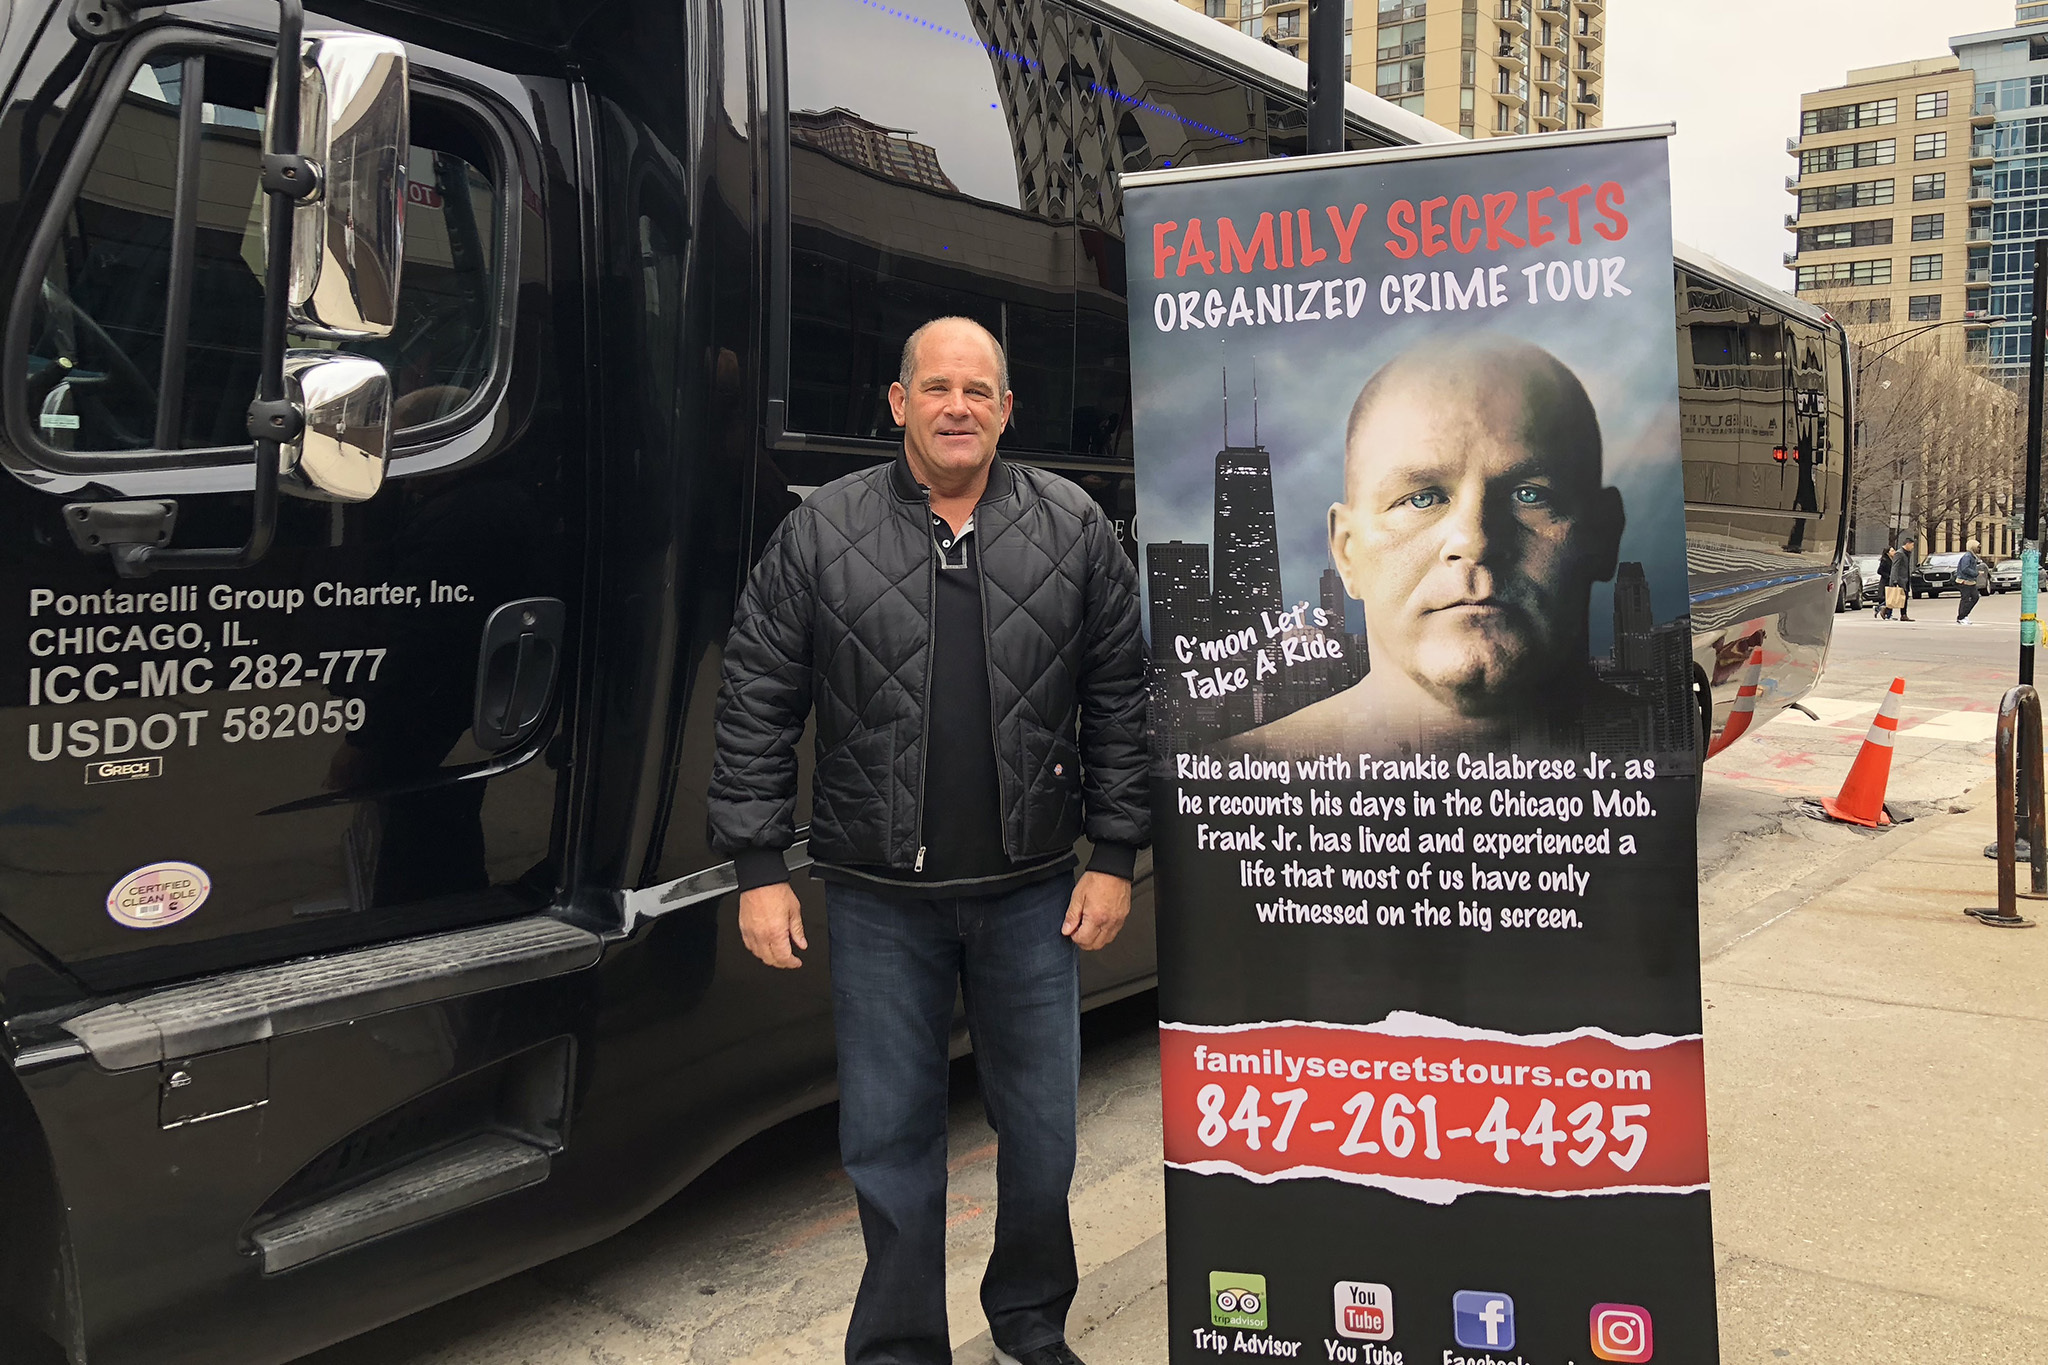 Operation Family Secrets crime tour